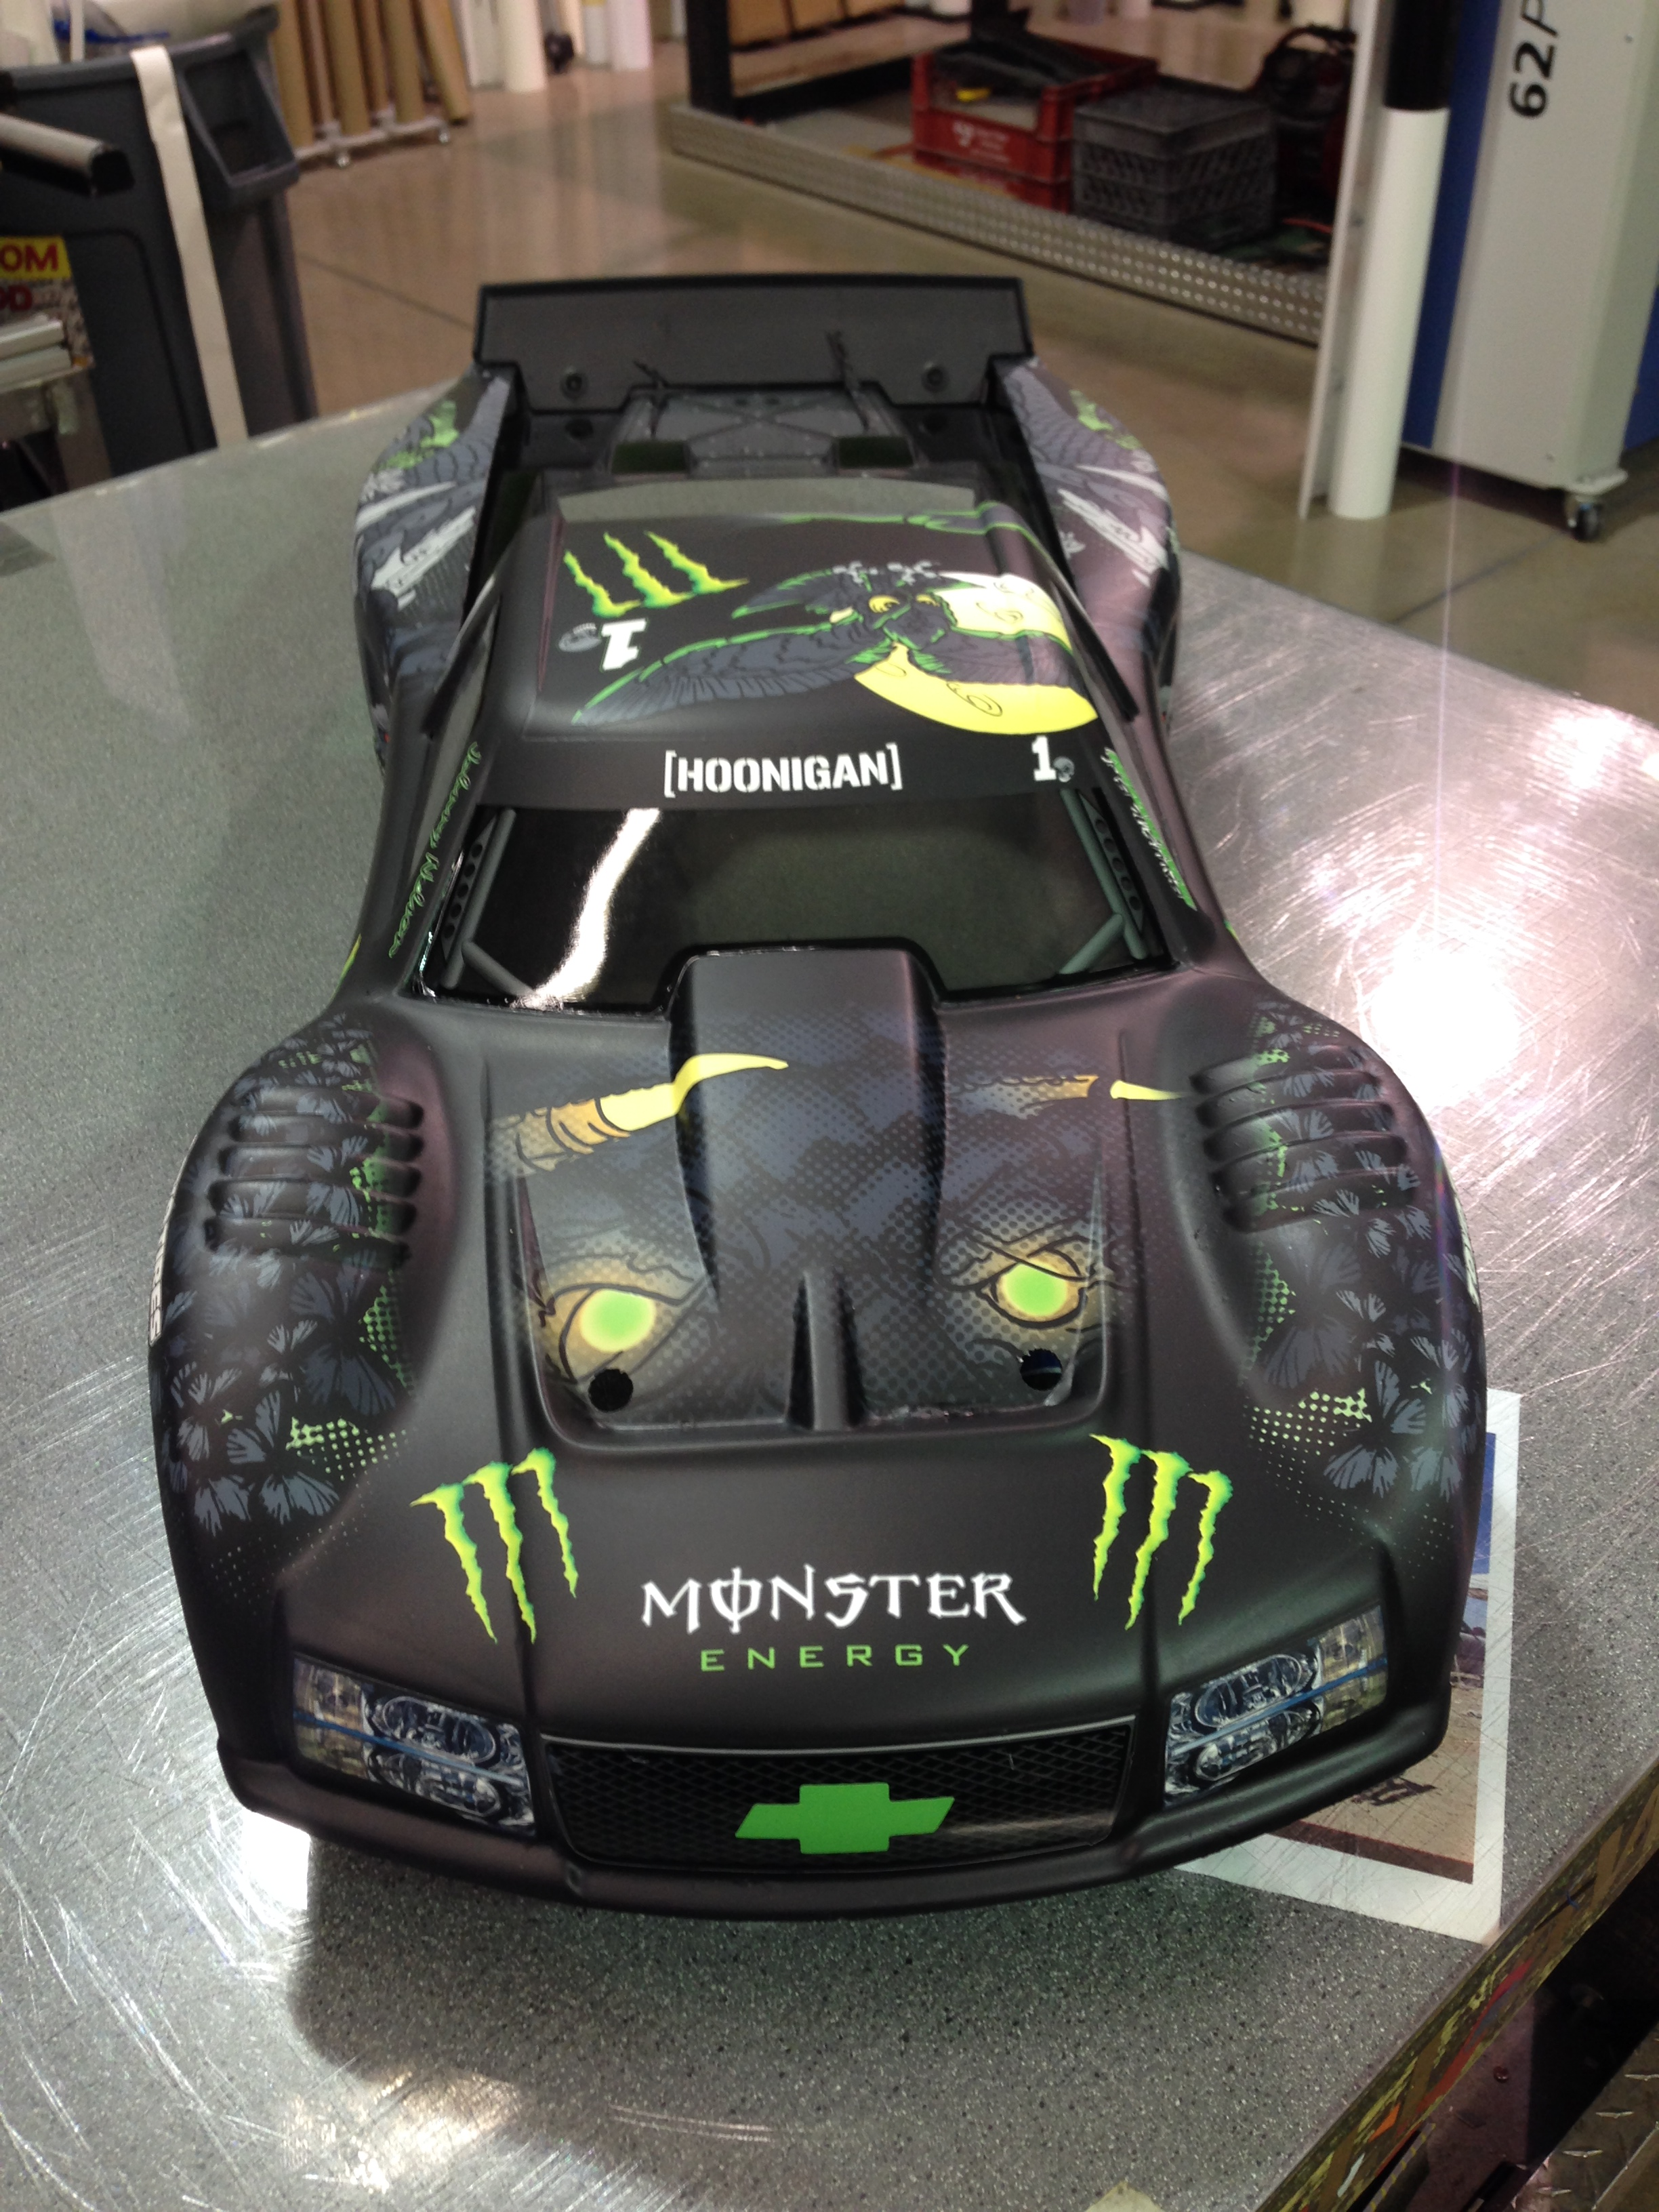 Race Graphics - Custom vinyl decals for rc cars